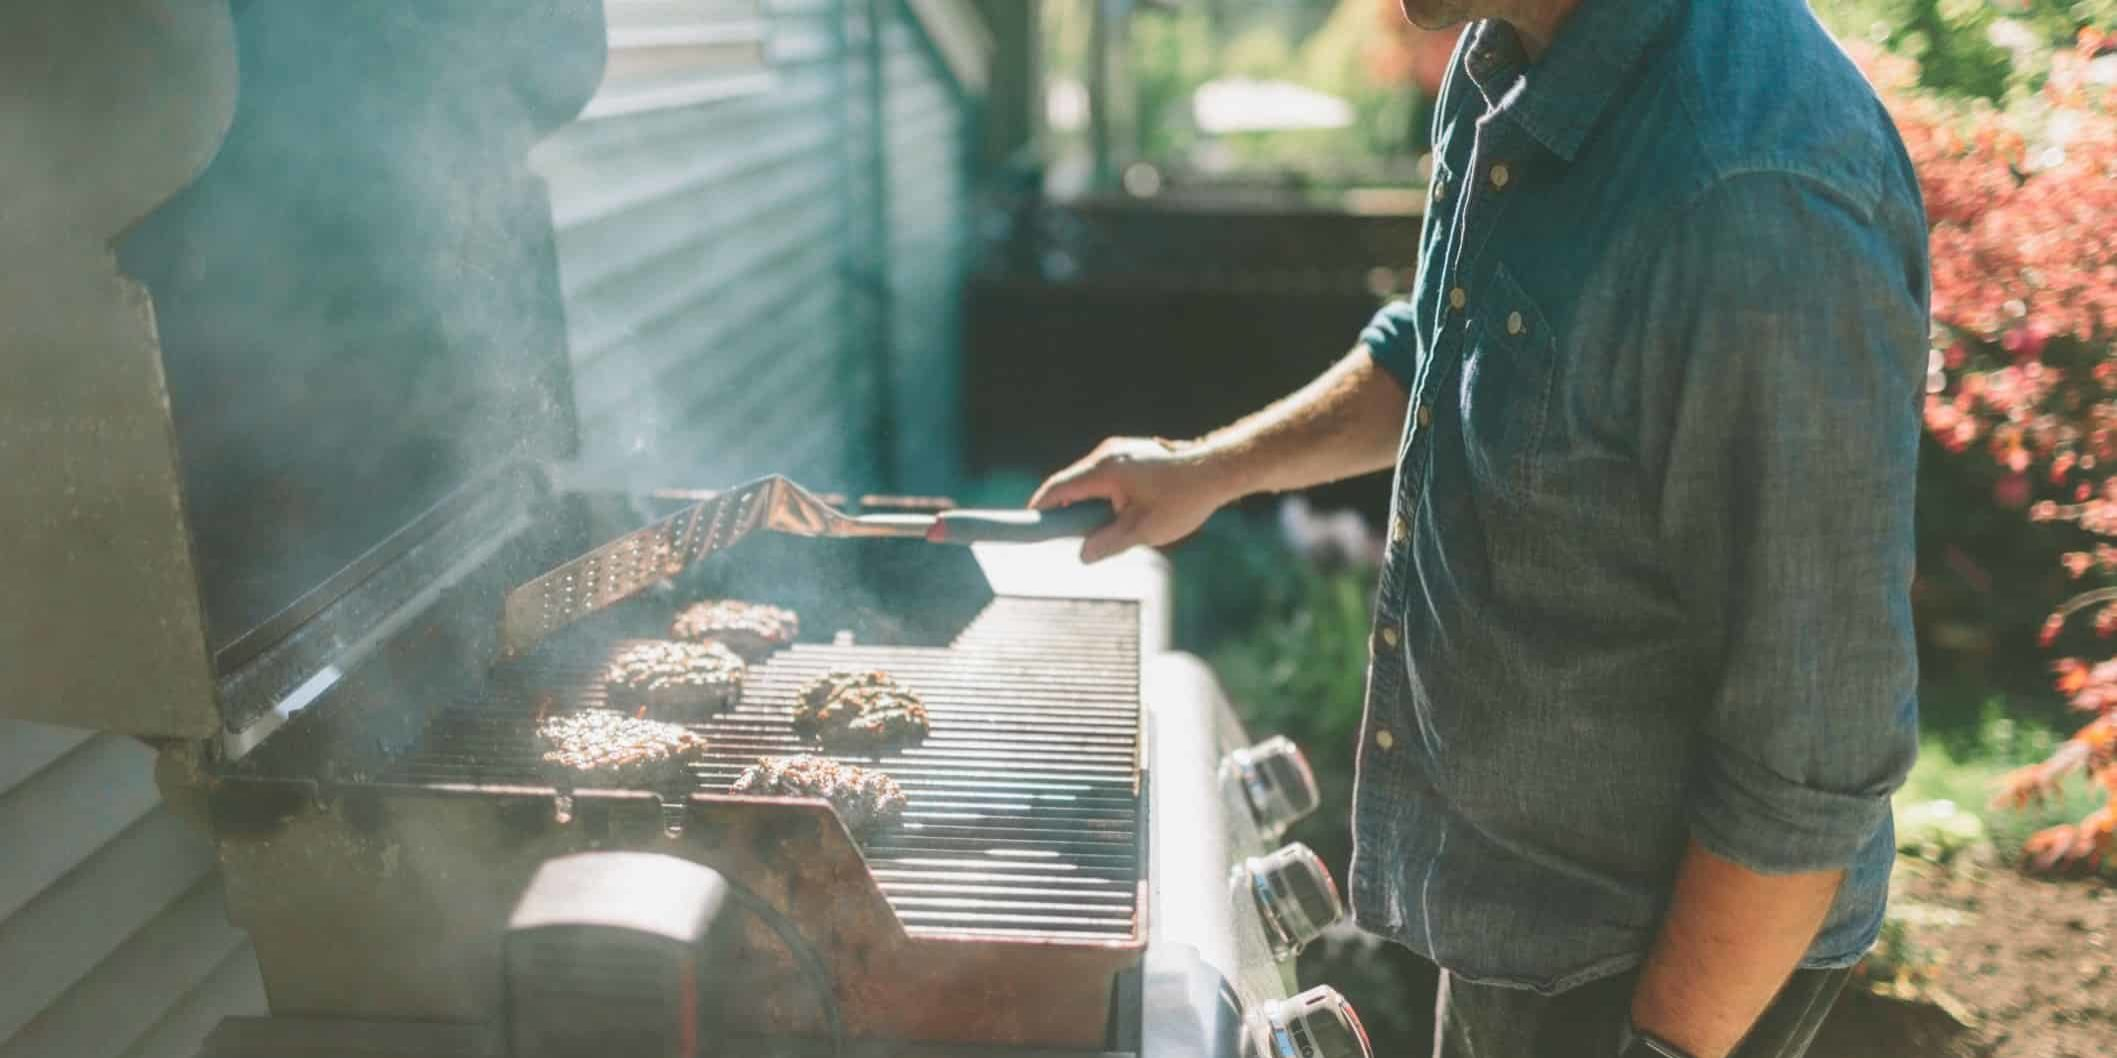 a-man-barbecuing-burgers-in-the-backyard_t20_ko9o9P (1)